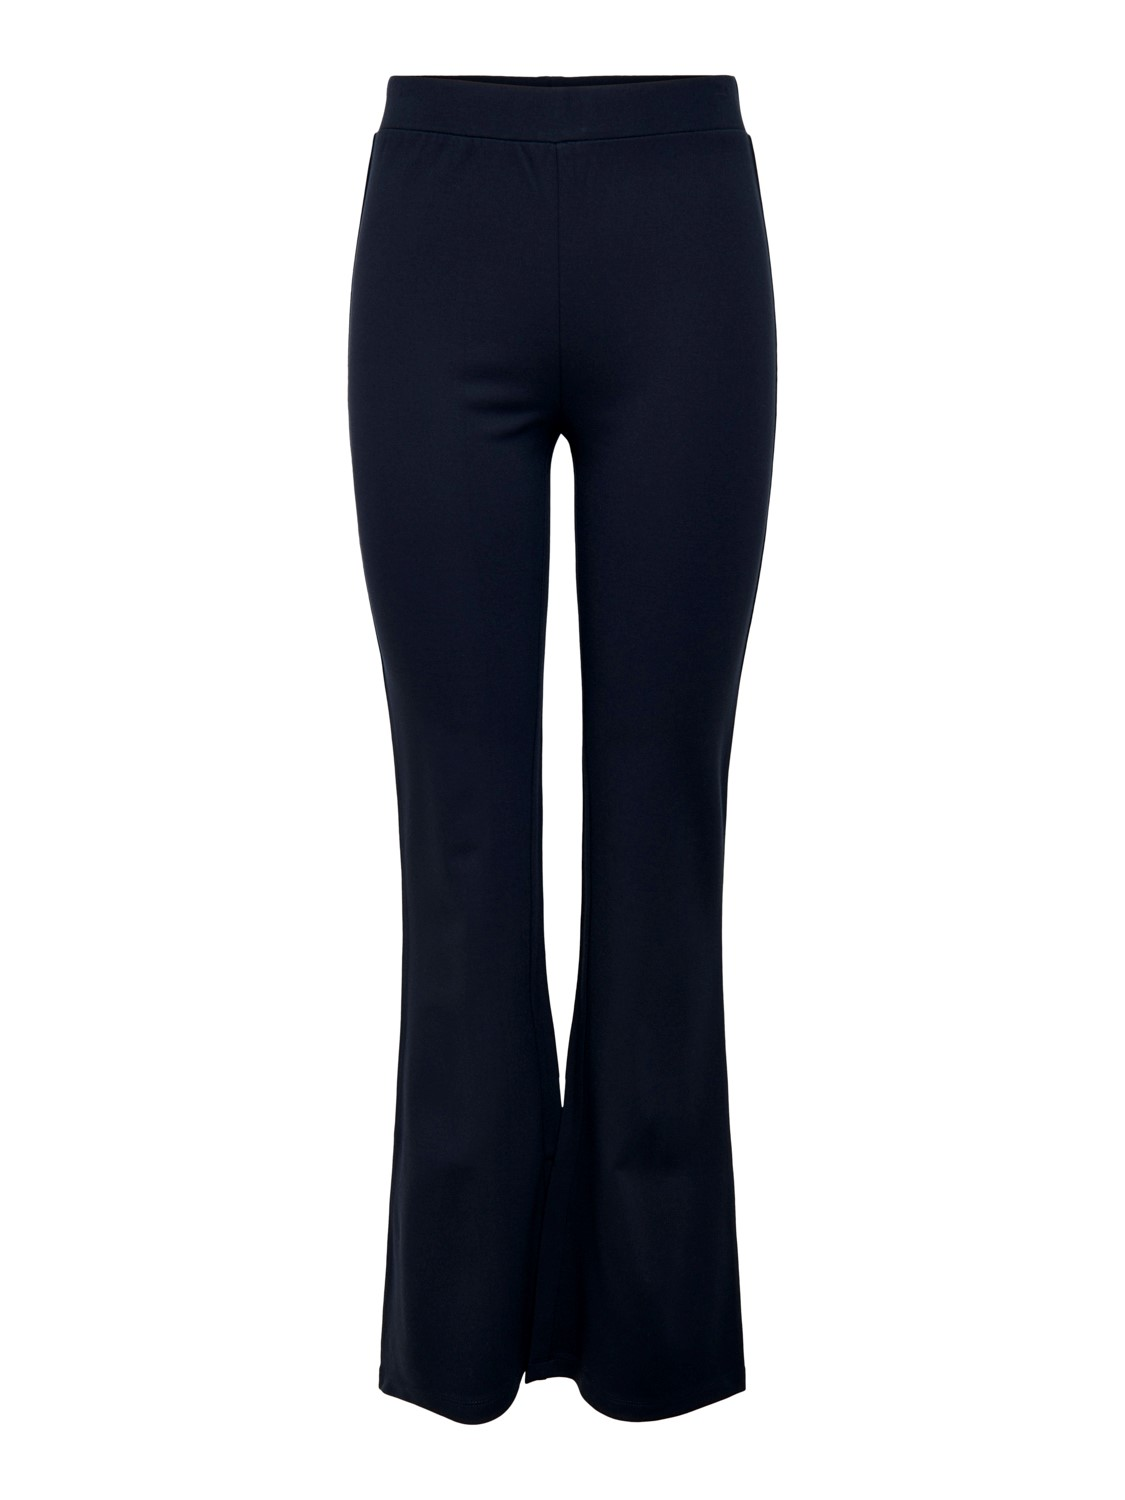 In-Mood Pretty Flare Pant